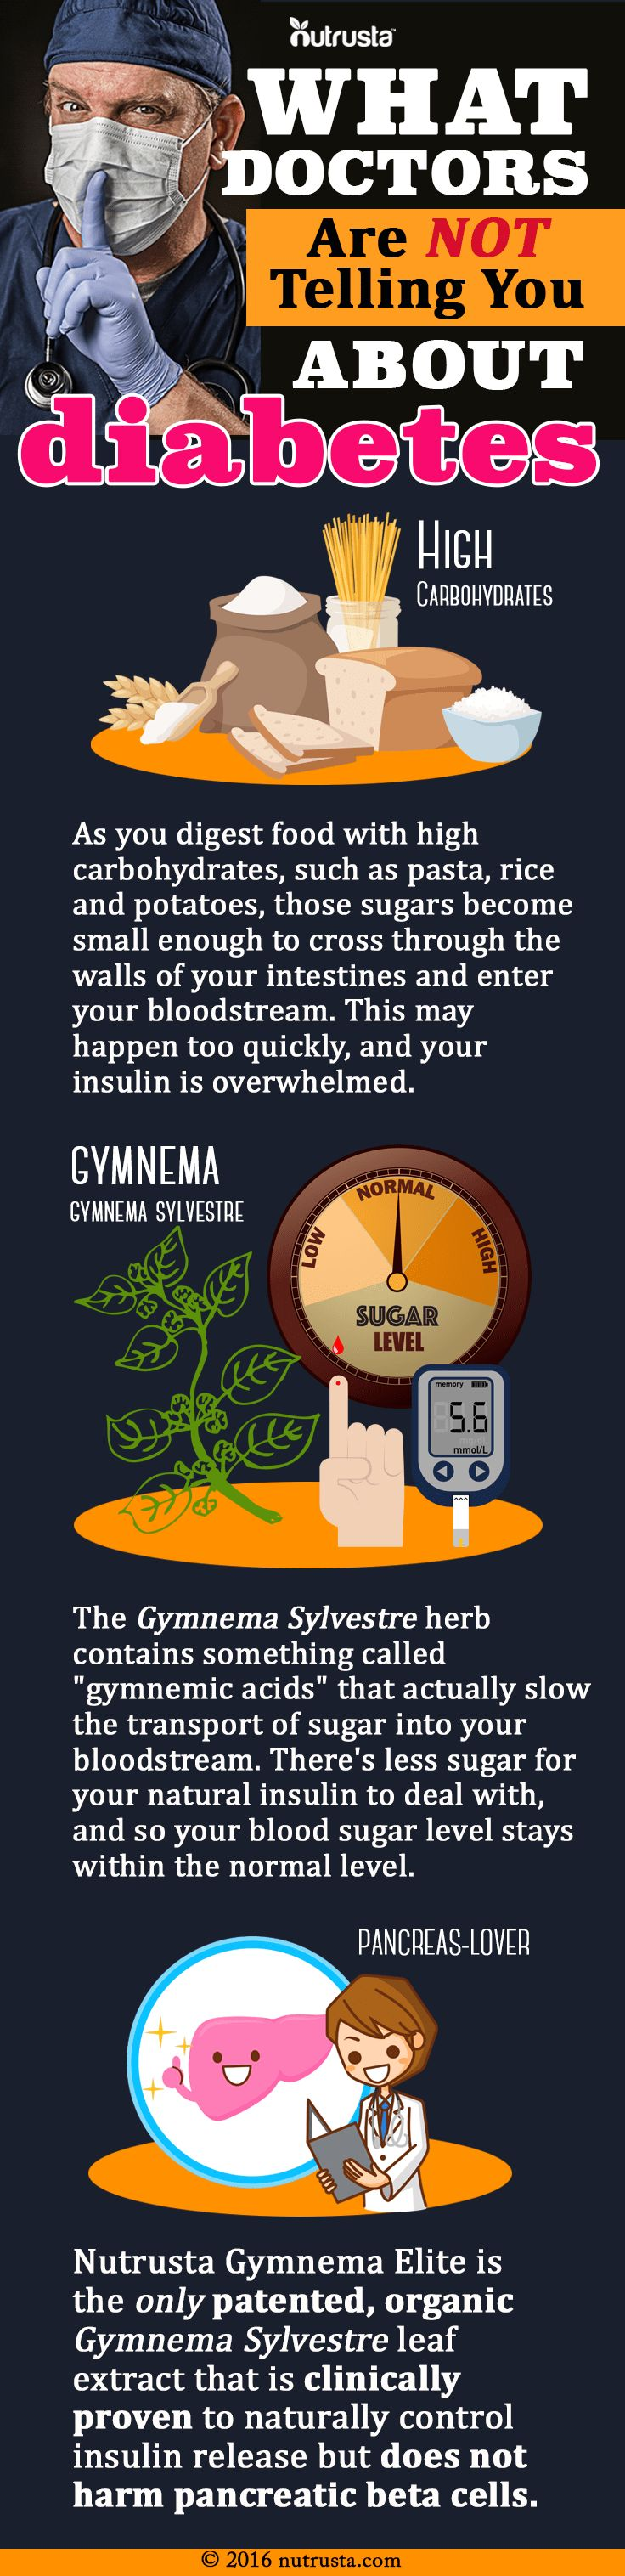 Nutrusta Gymnema Elite is the only patented, organic Gymnema Sylvestre leaf extract that is clinically proven to naturally control insulin release but does not harm pancreatic beta cells.